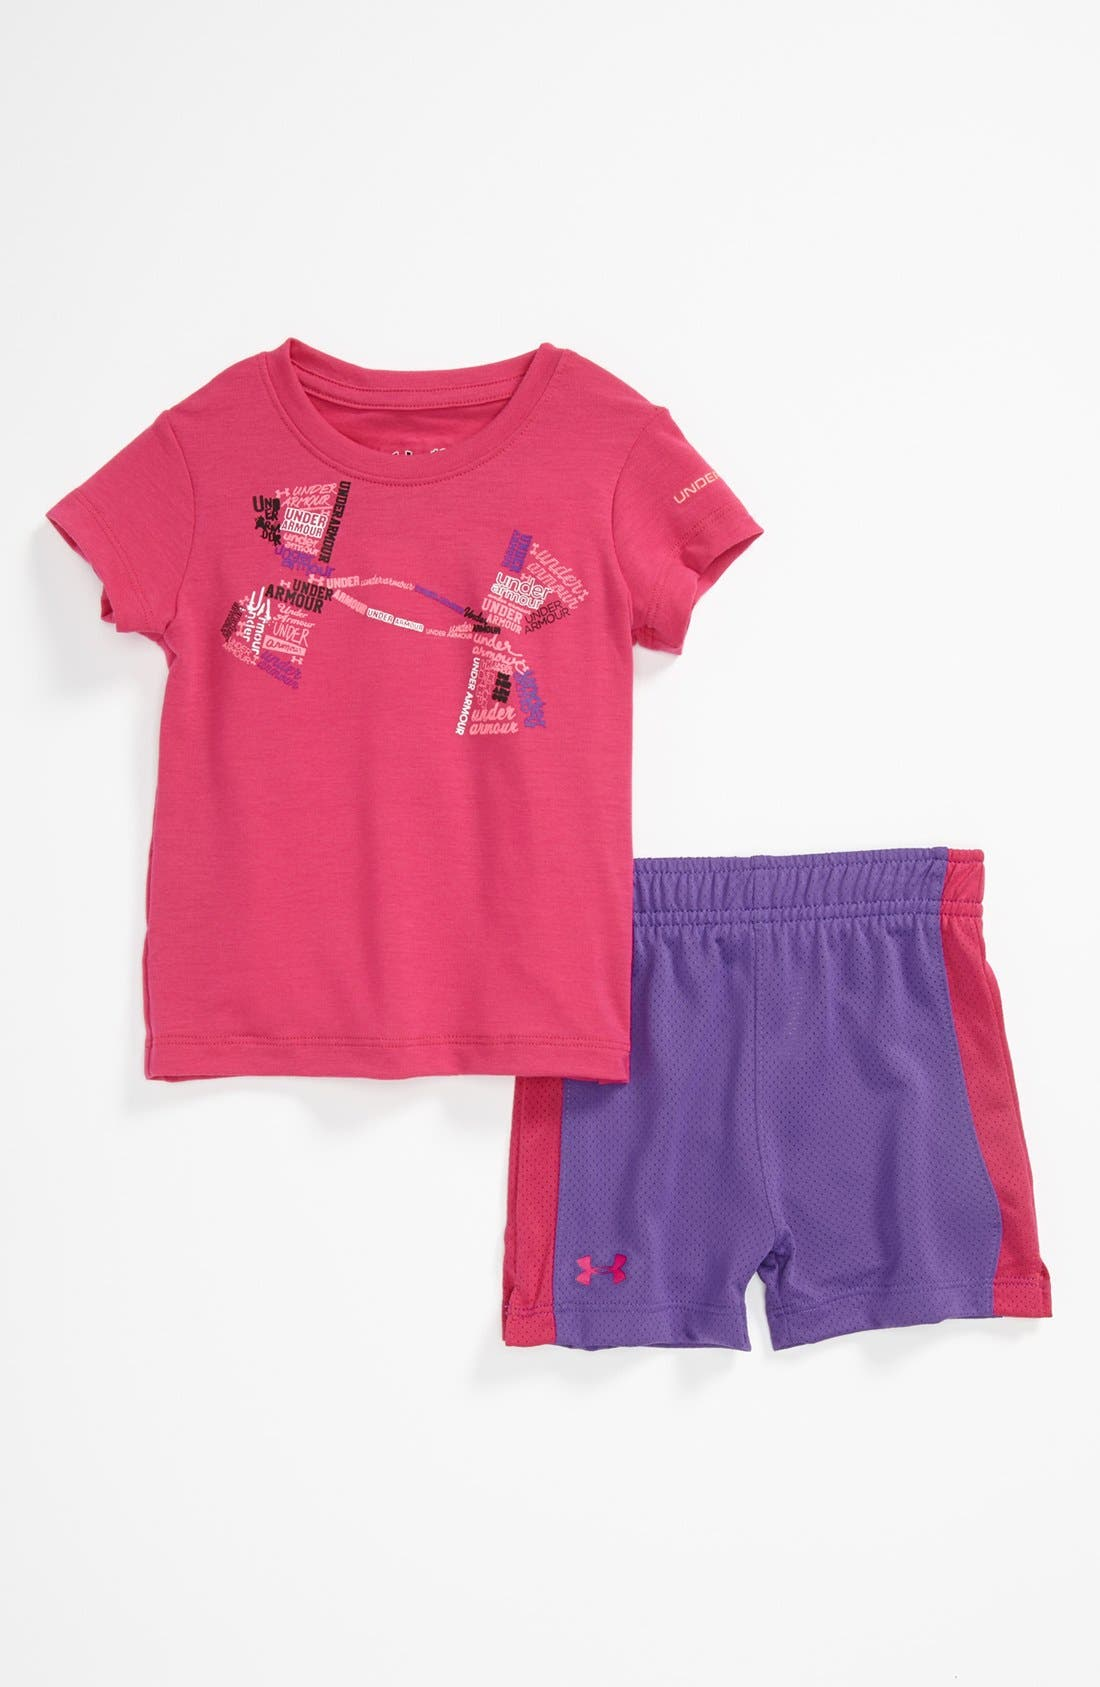 Alternate Image 1 Selected - Under Armour T-Shirt & Shorts (Baby Girls)